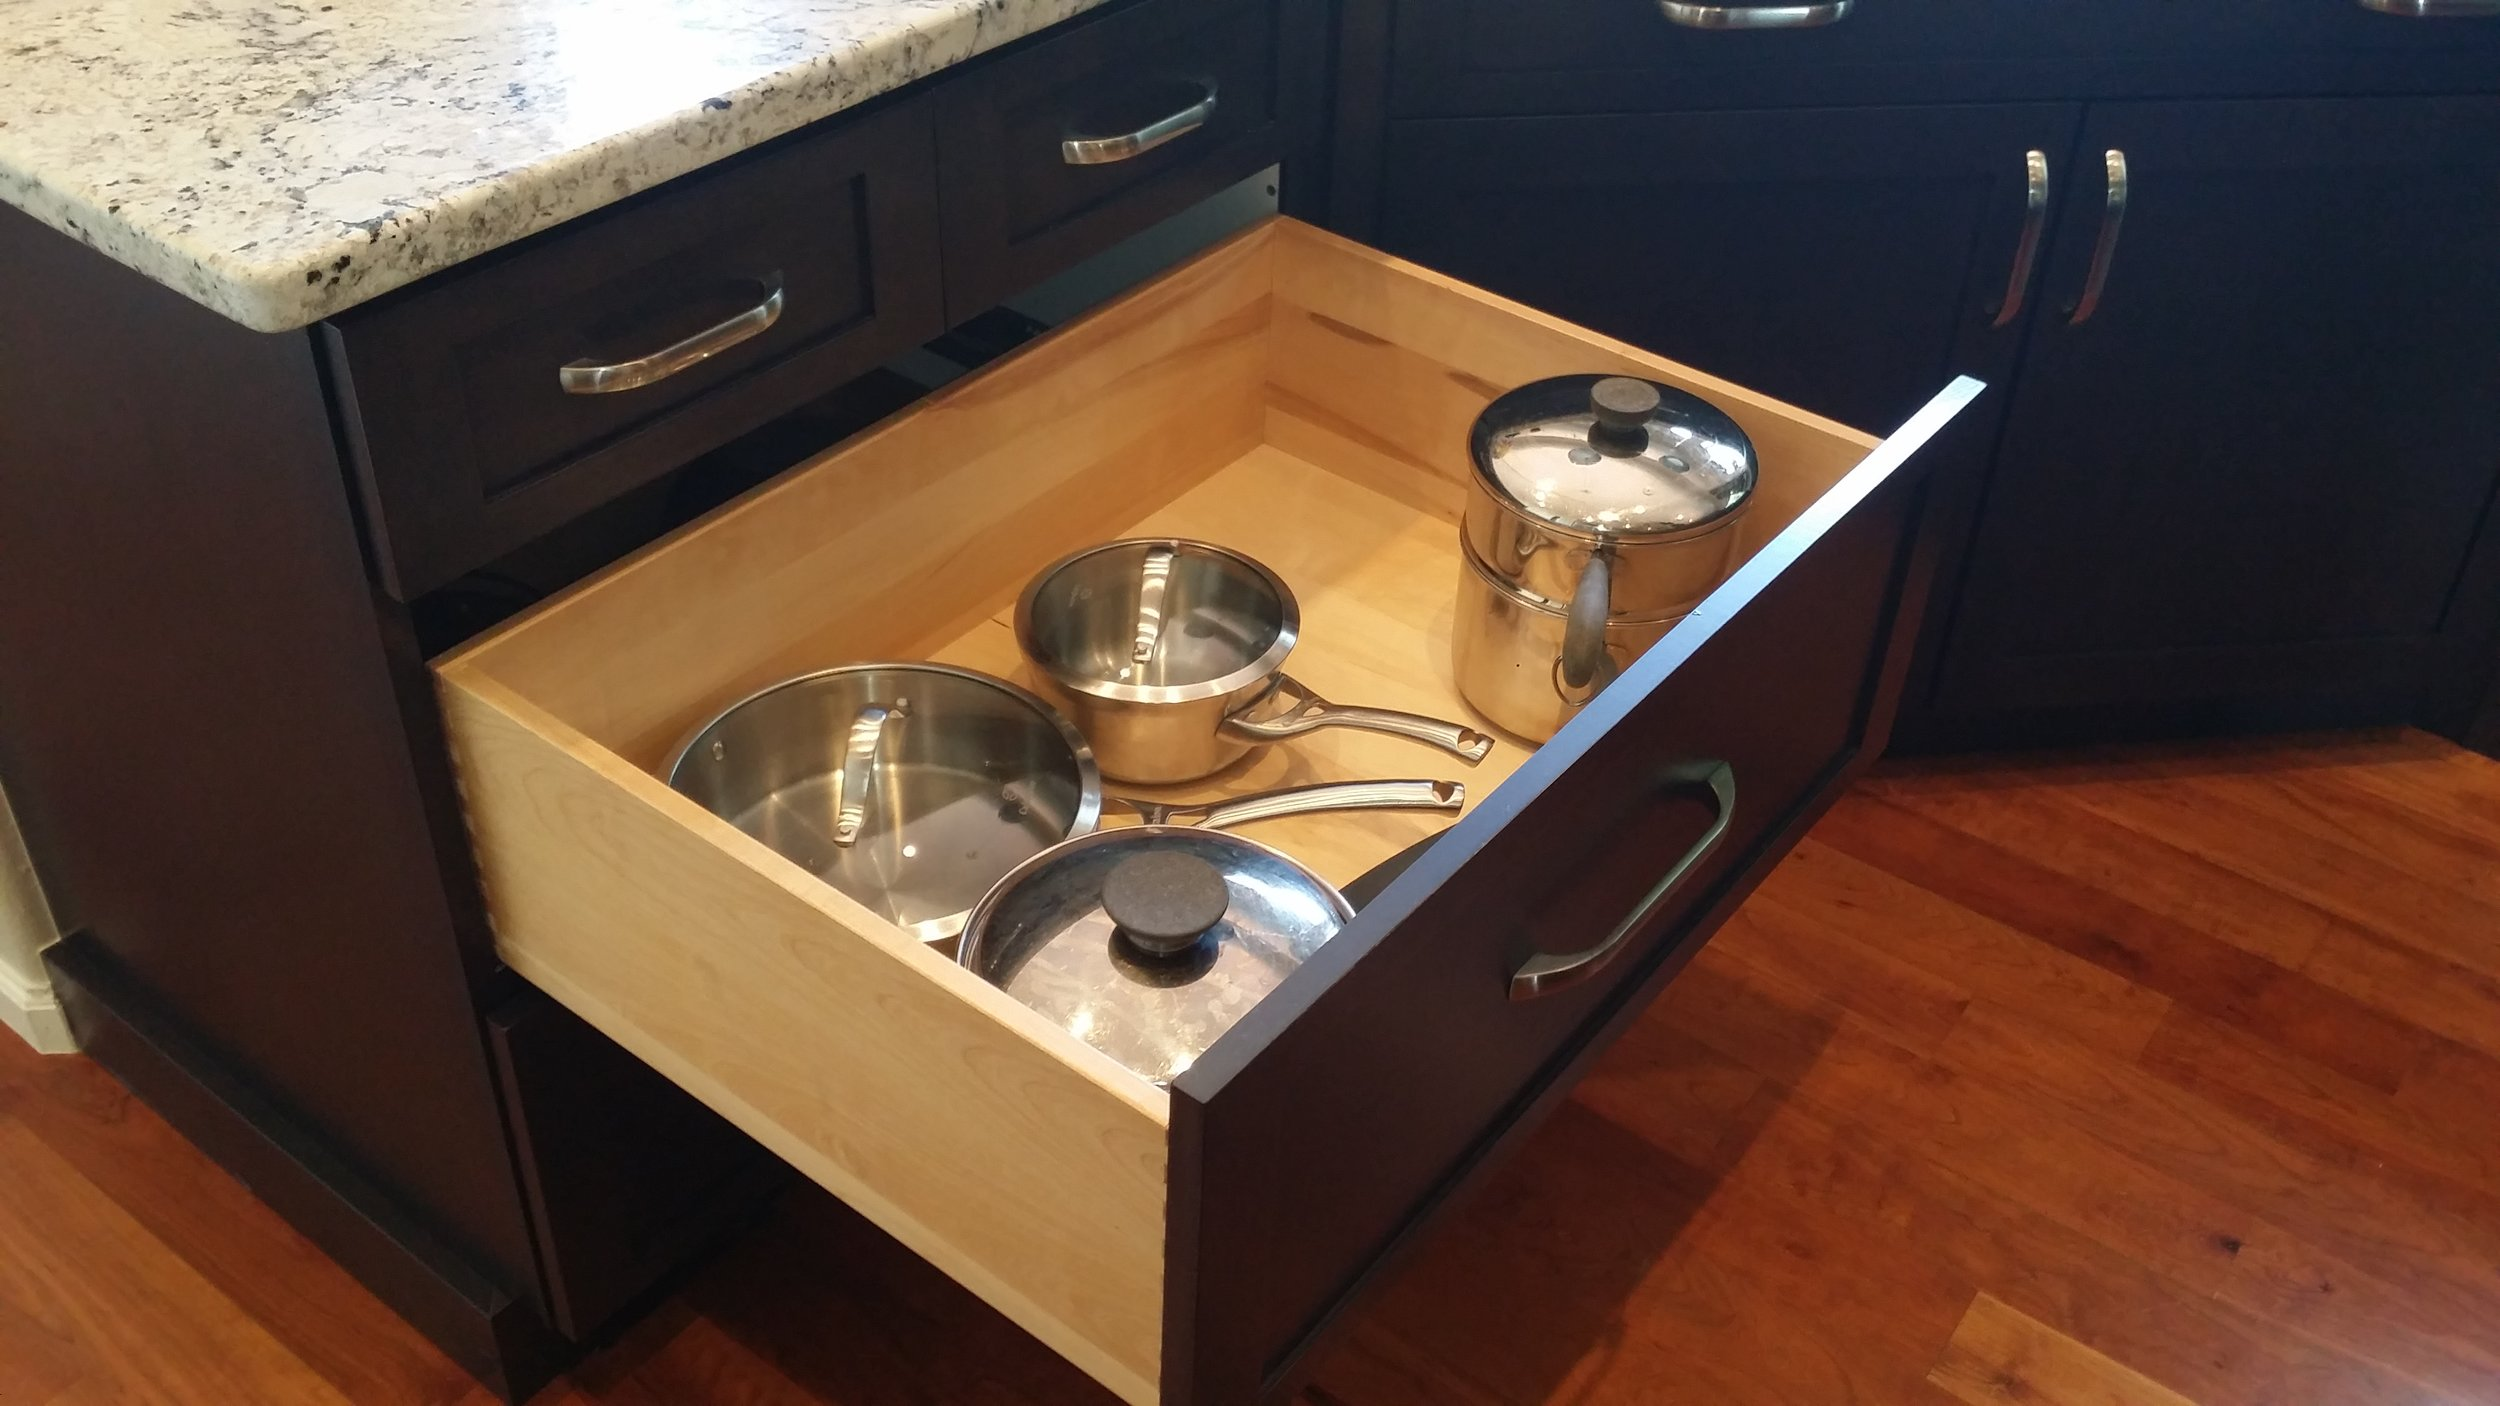 """Solid wood drawer boxes are a nice addition to any kitchen that doesn't already have them. Constructed from solid 5/8"""" thick birch with dovetailed corners on heavy duty full extension under mounted soft close slides."""